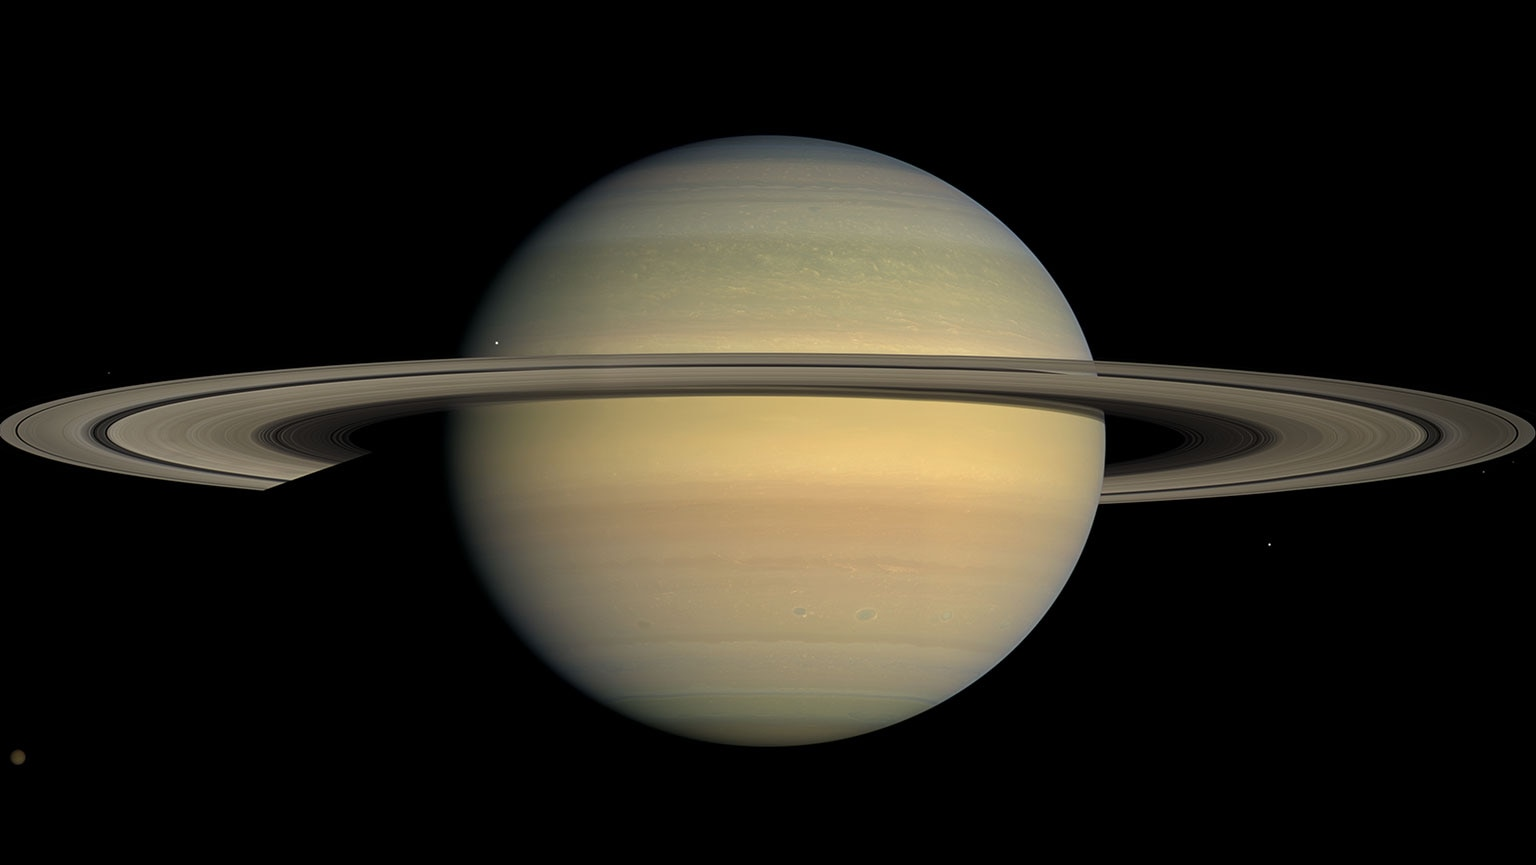 Saturn—The Rings of Enchantment